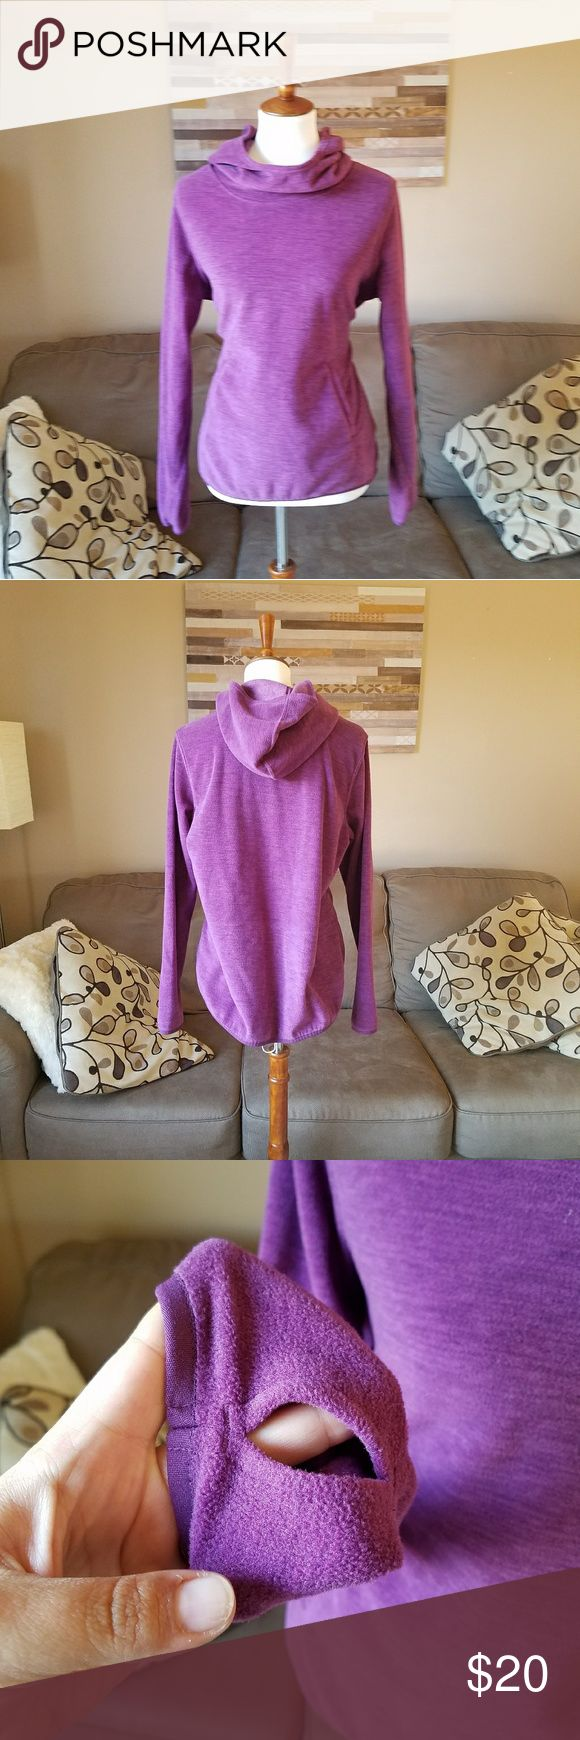 Old Navy Active Purple Petite Hoodie Gently used .  Stretch . Thumb holes . Super soft .  #070904 Old Navy Tops Sweatshirts & Hoodies